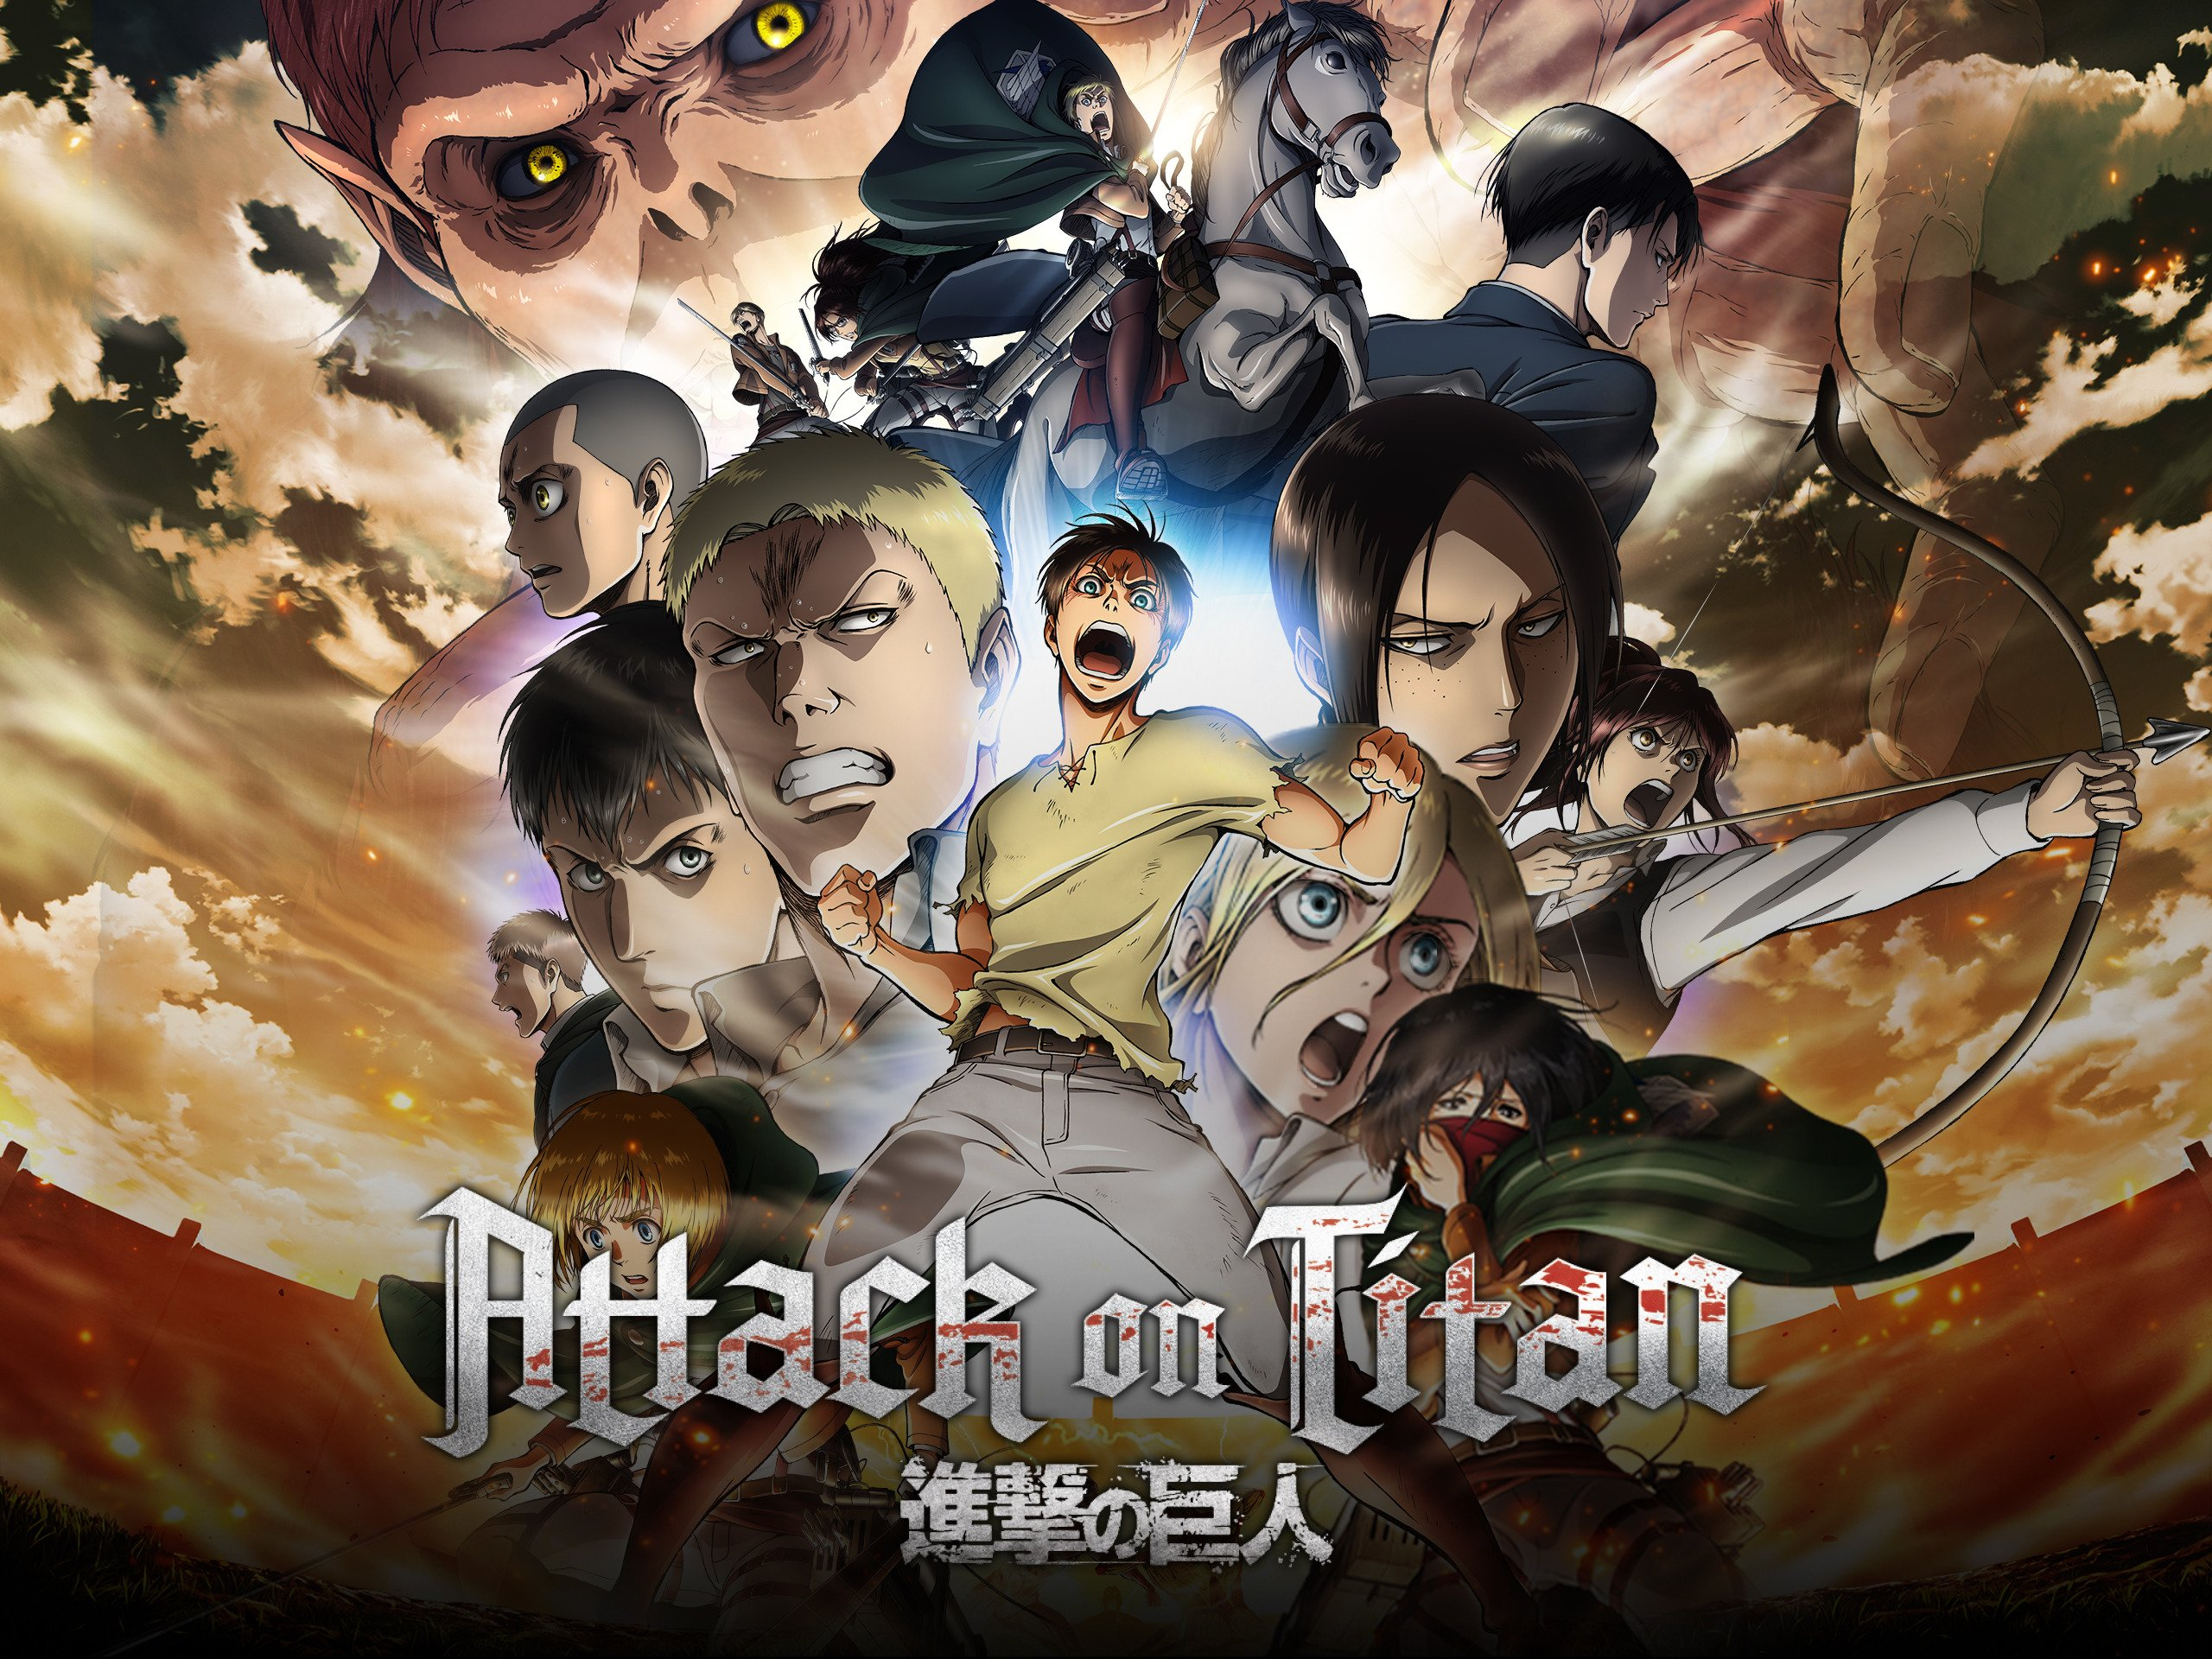 Attack on Titan Season 4: Trailer, Release Date, Plot ... Furious to have her hometown trampled, gabi picks up a gun and takes off.